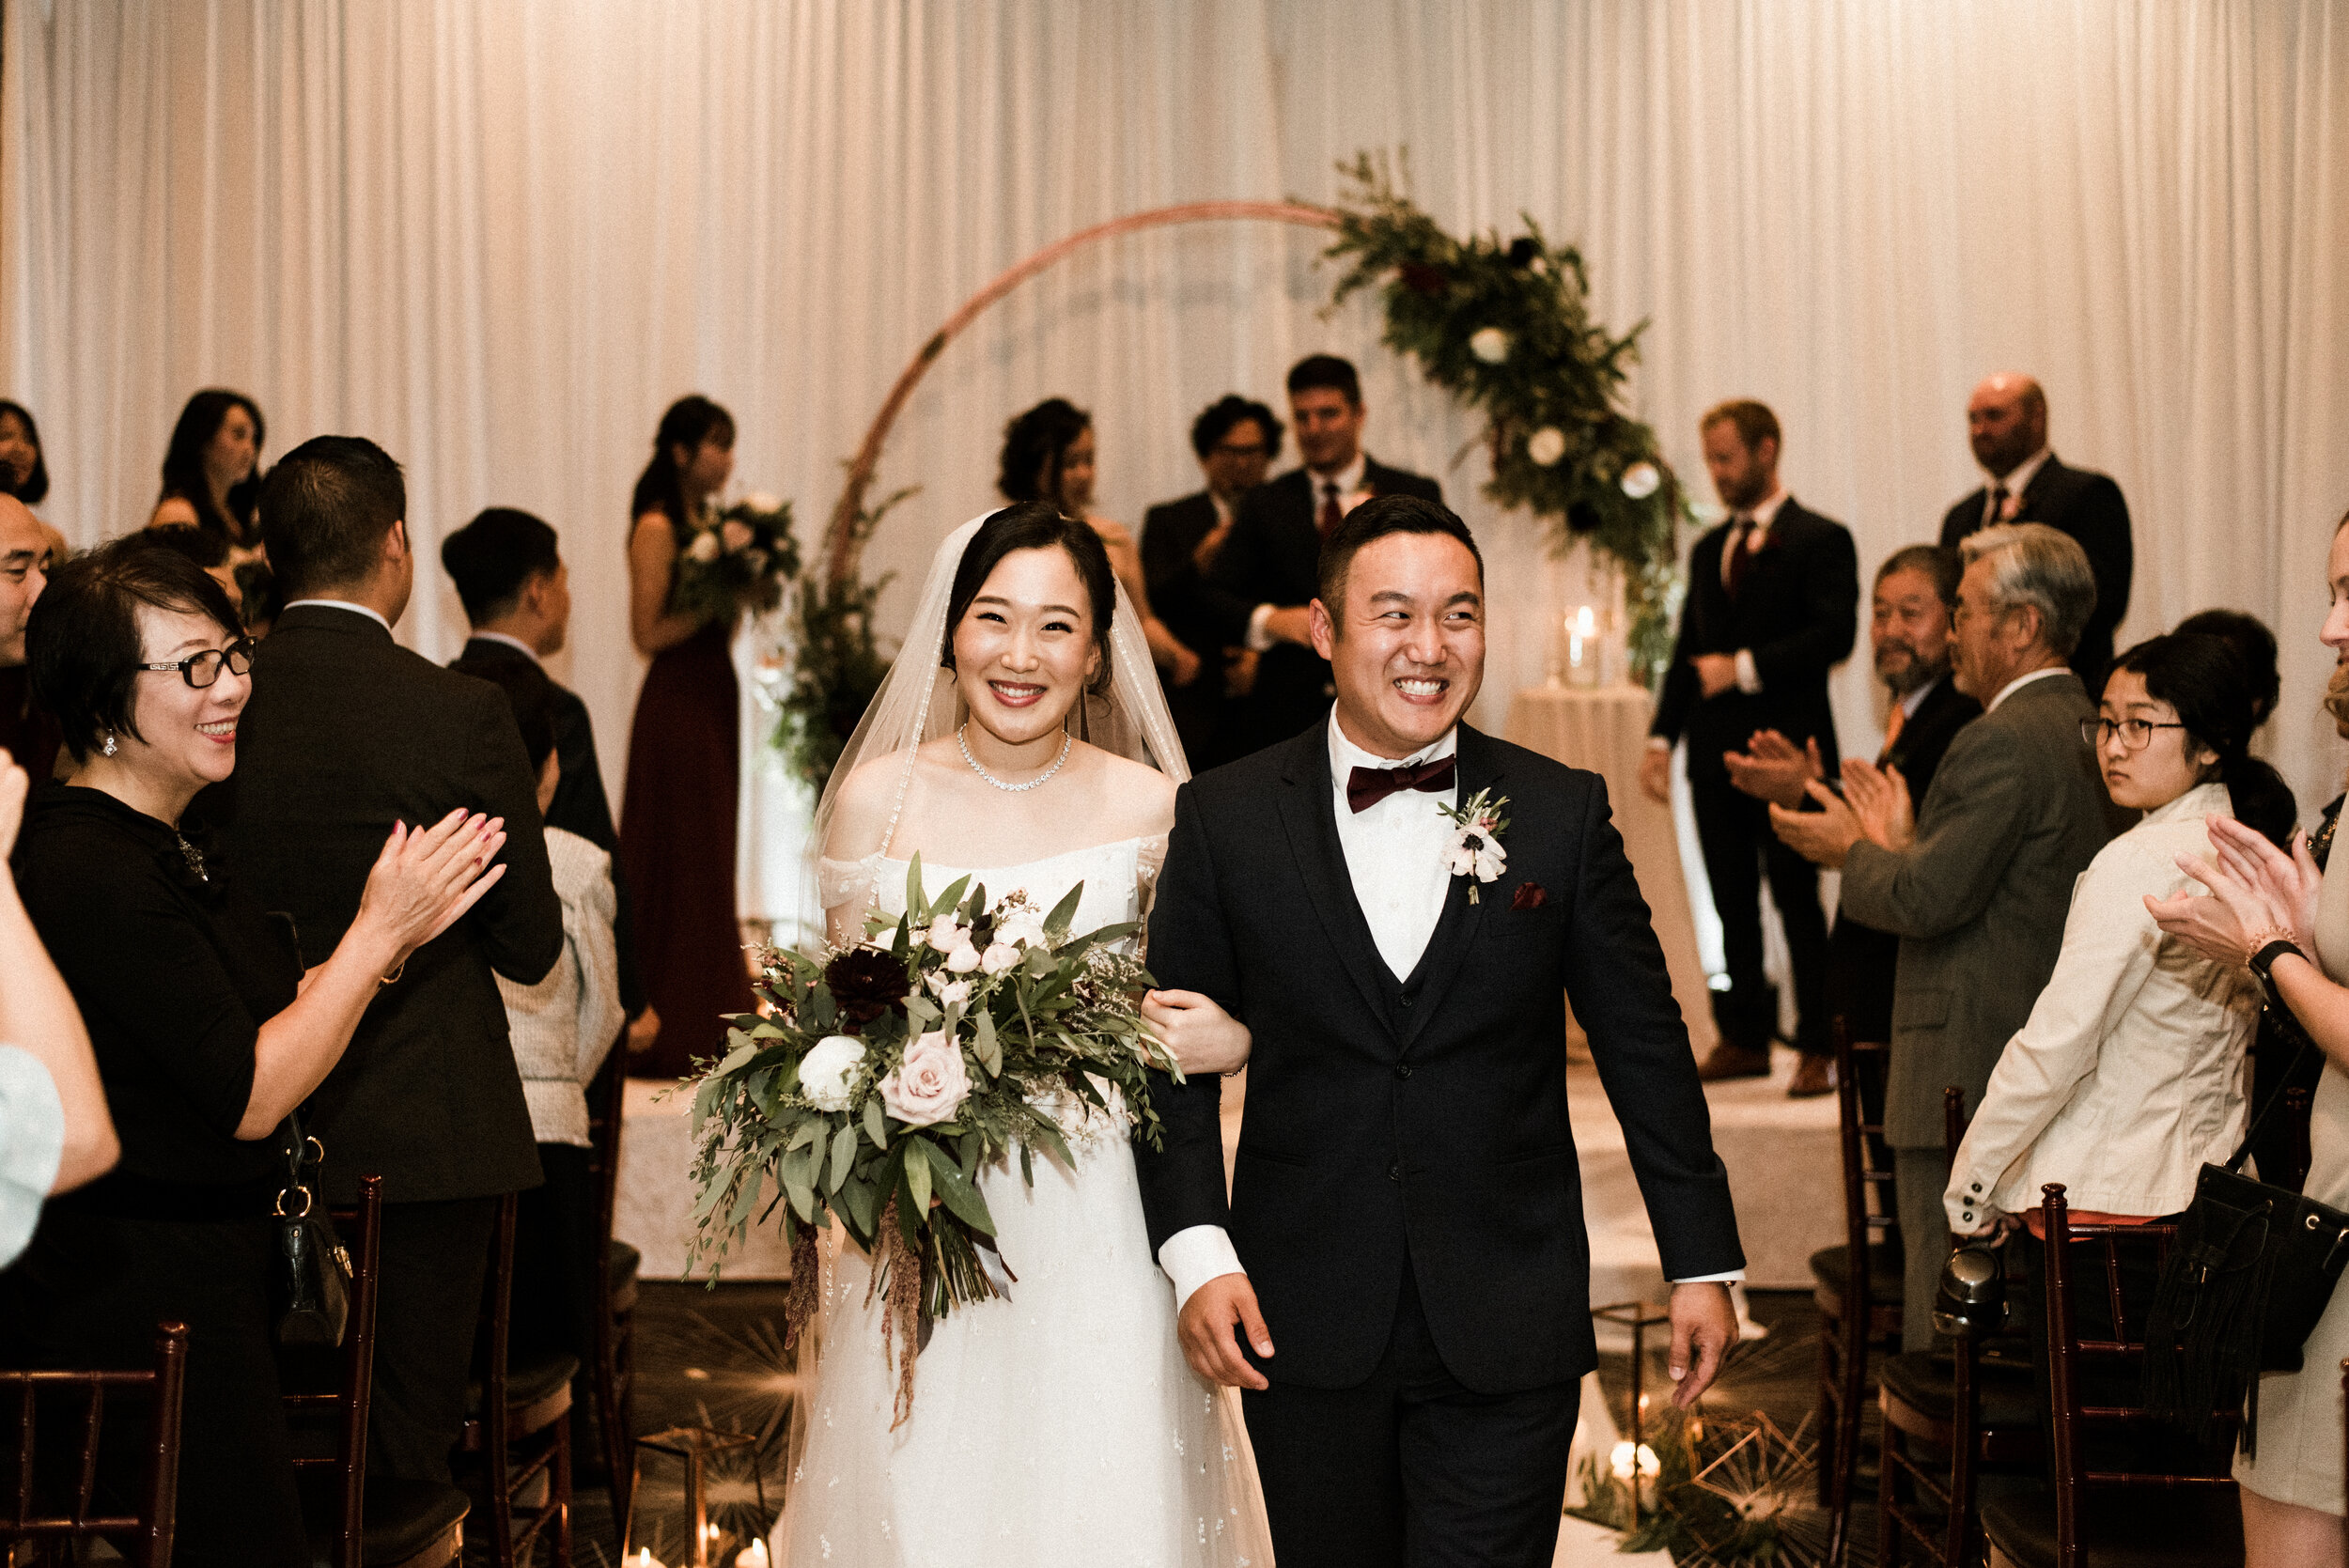 Anna and Jason - Romantic and Modern Chicago Wedding | The Estate by Gene and Georgetti Rosemont, IL | Naperville Wedding Photographer